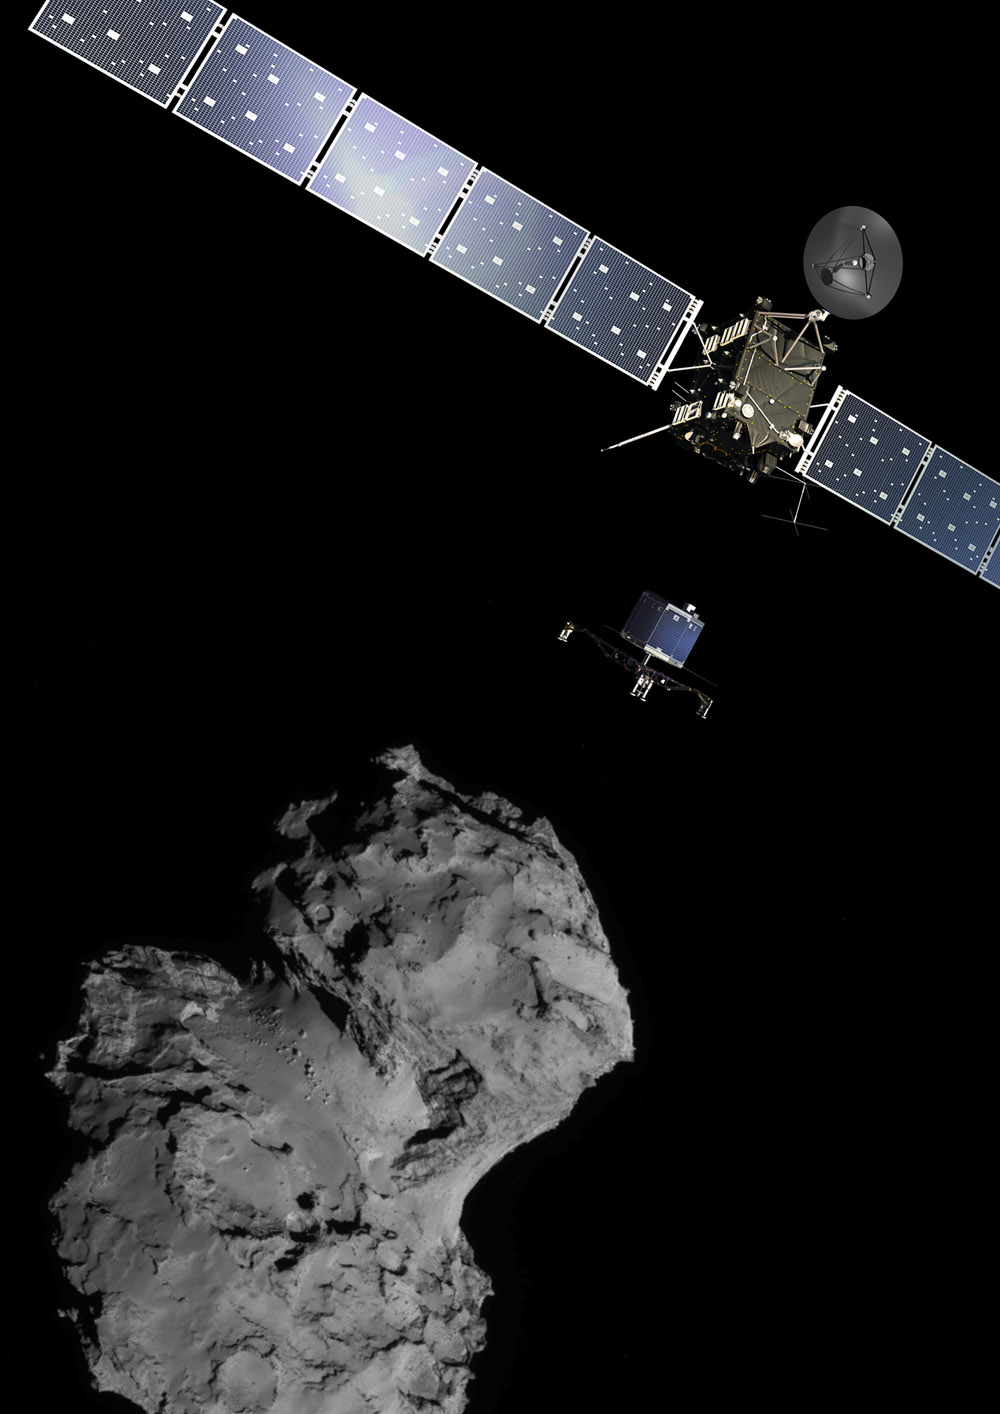 Watch as the European Space Agency tries to land on a comet